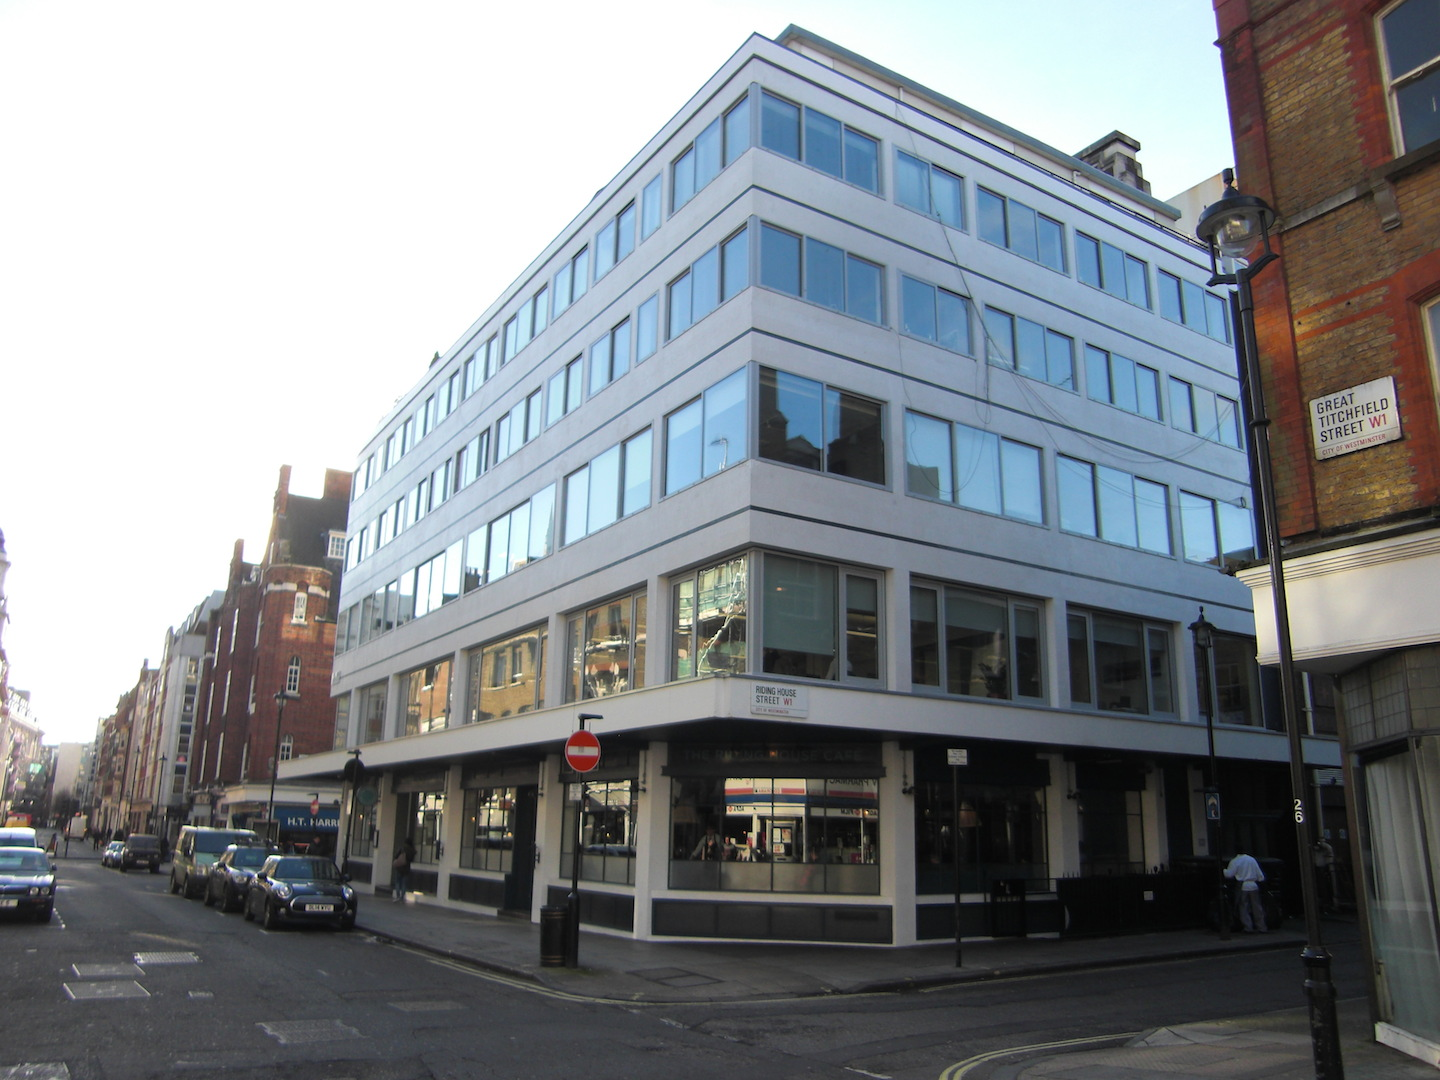 Building at Riding House Street and Great Titchfield Street. Clean, elegant, contextual and crying out for a proper European café to be housed within. Photo by author.